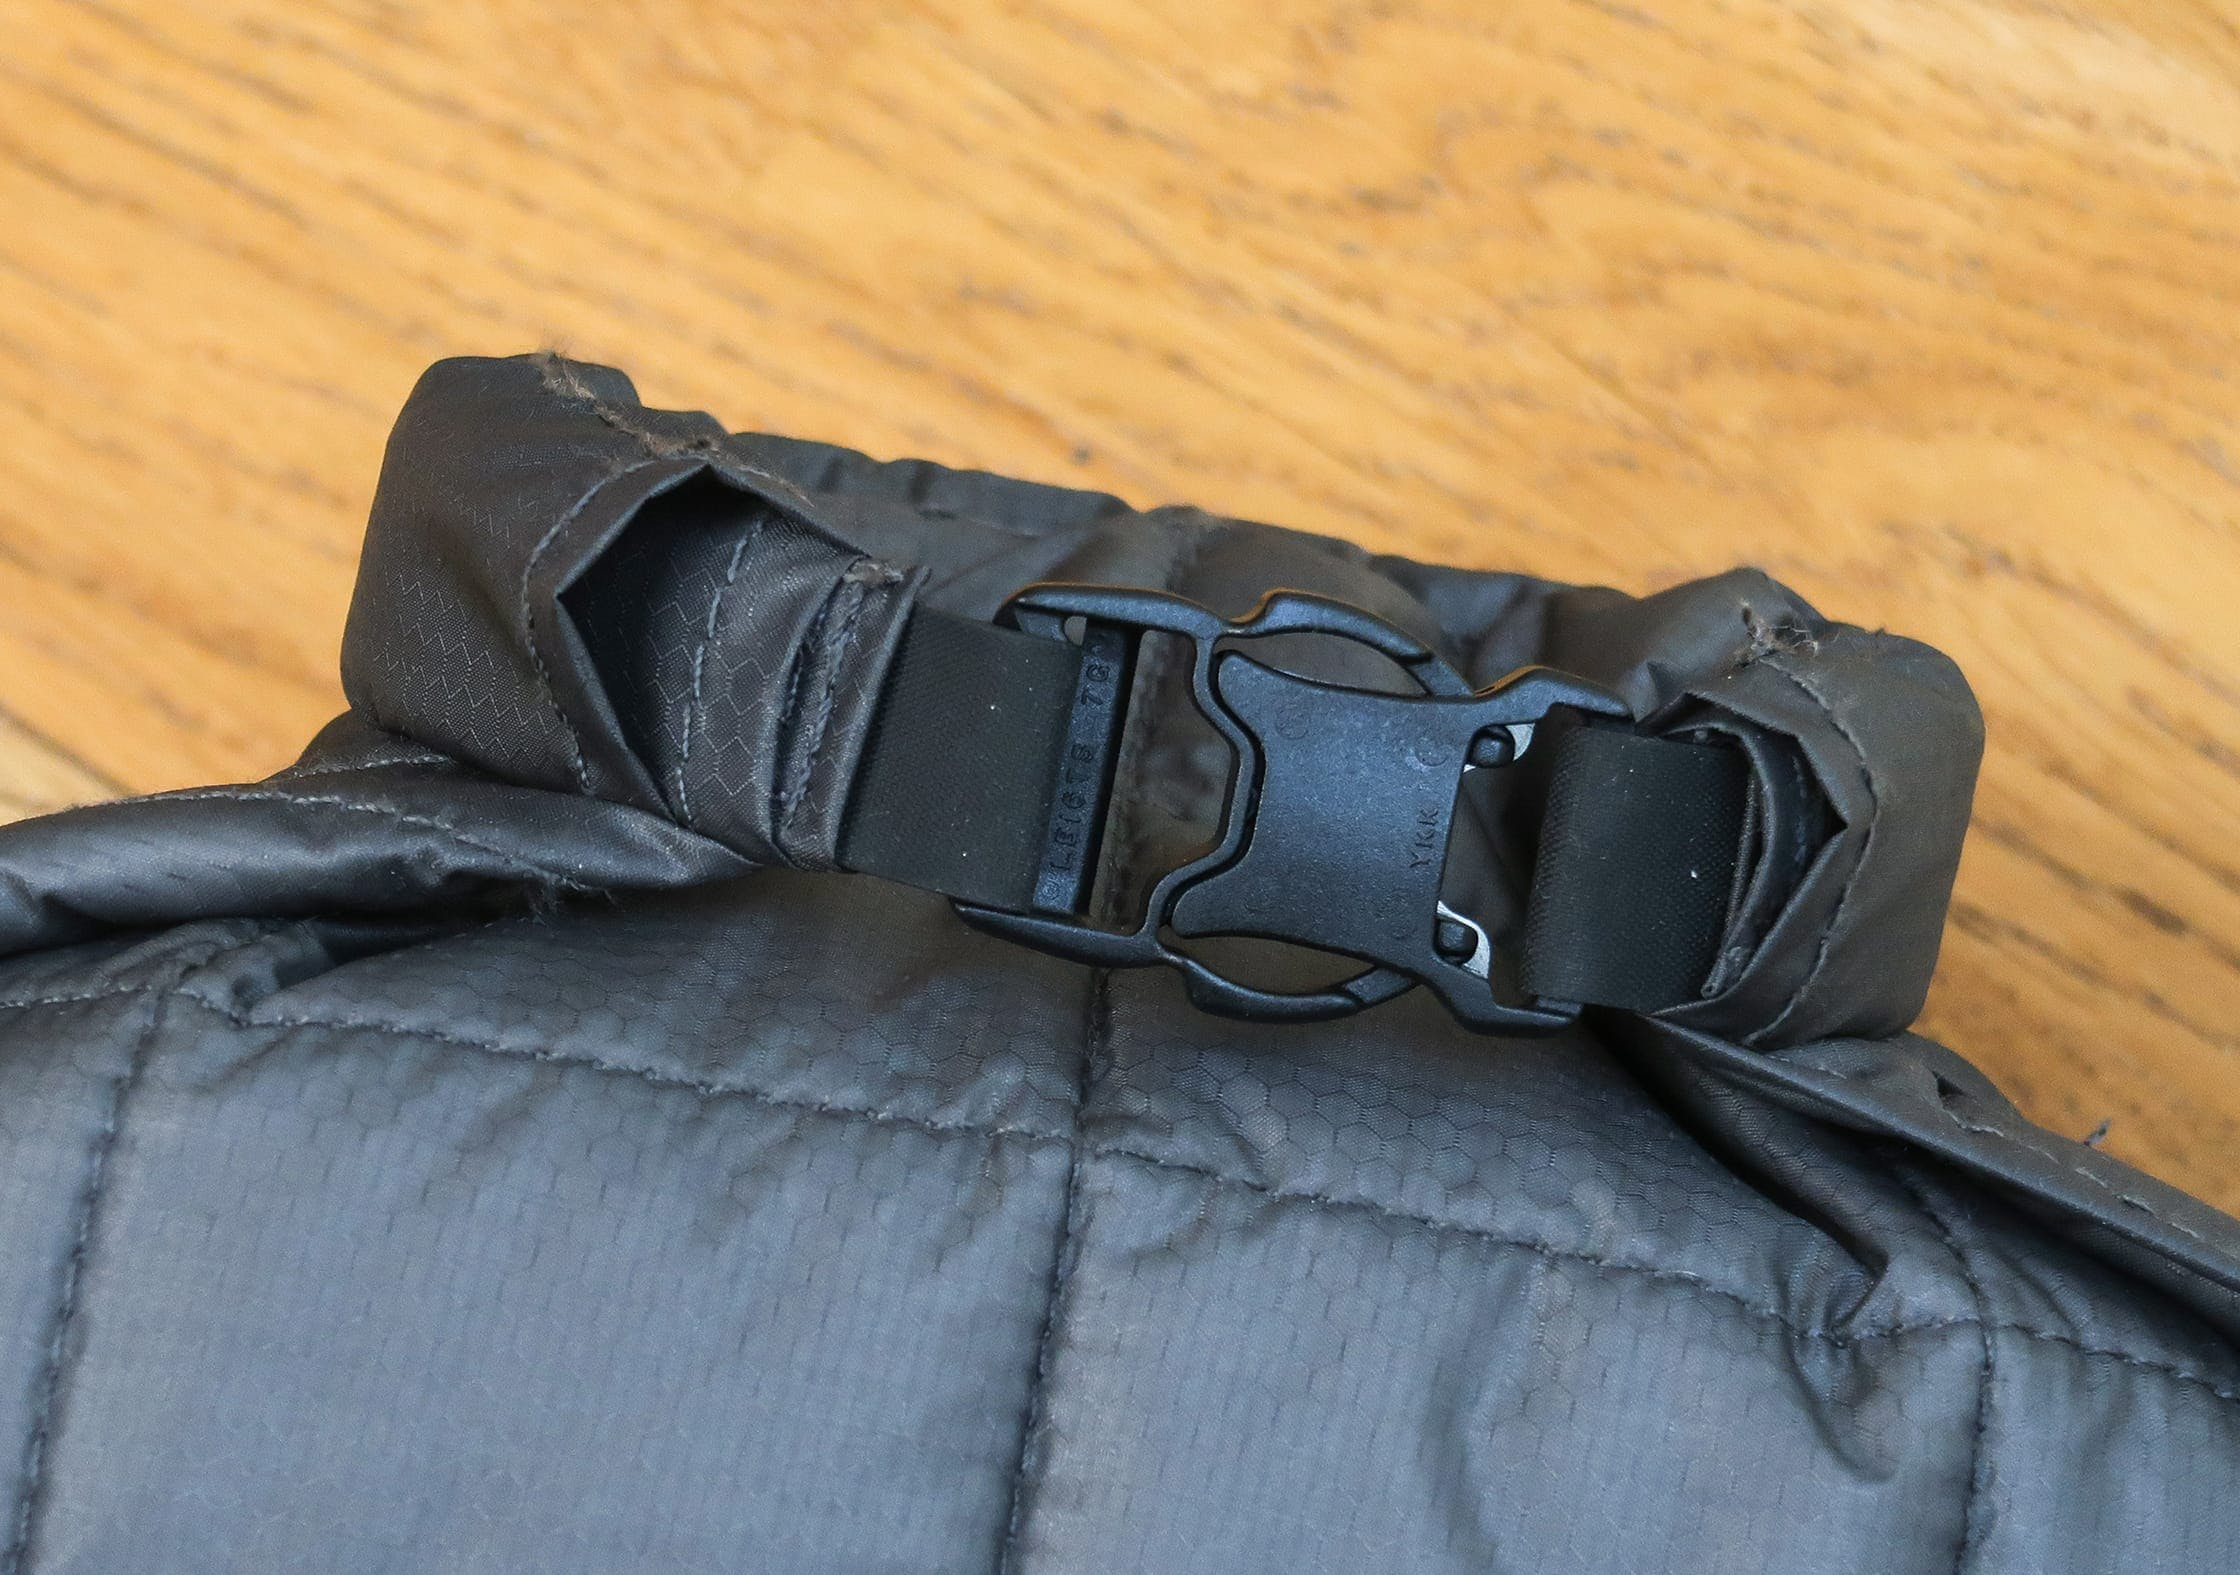 Matador Camera Base Layer Hypalon Rolltop & YKK Buckle